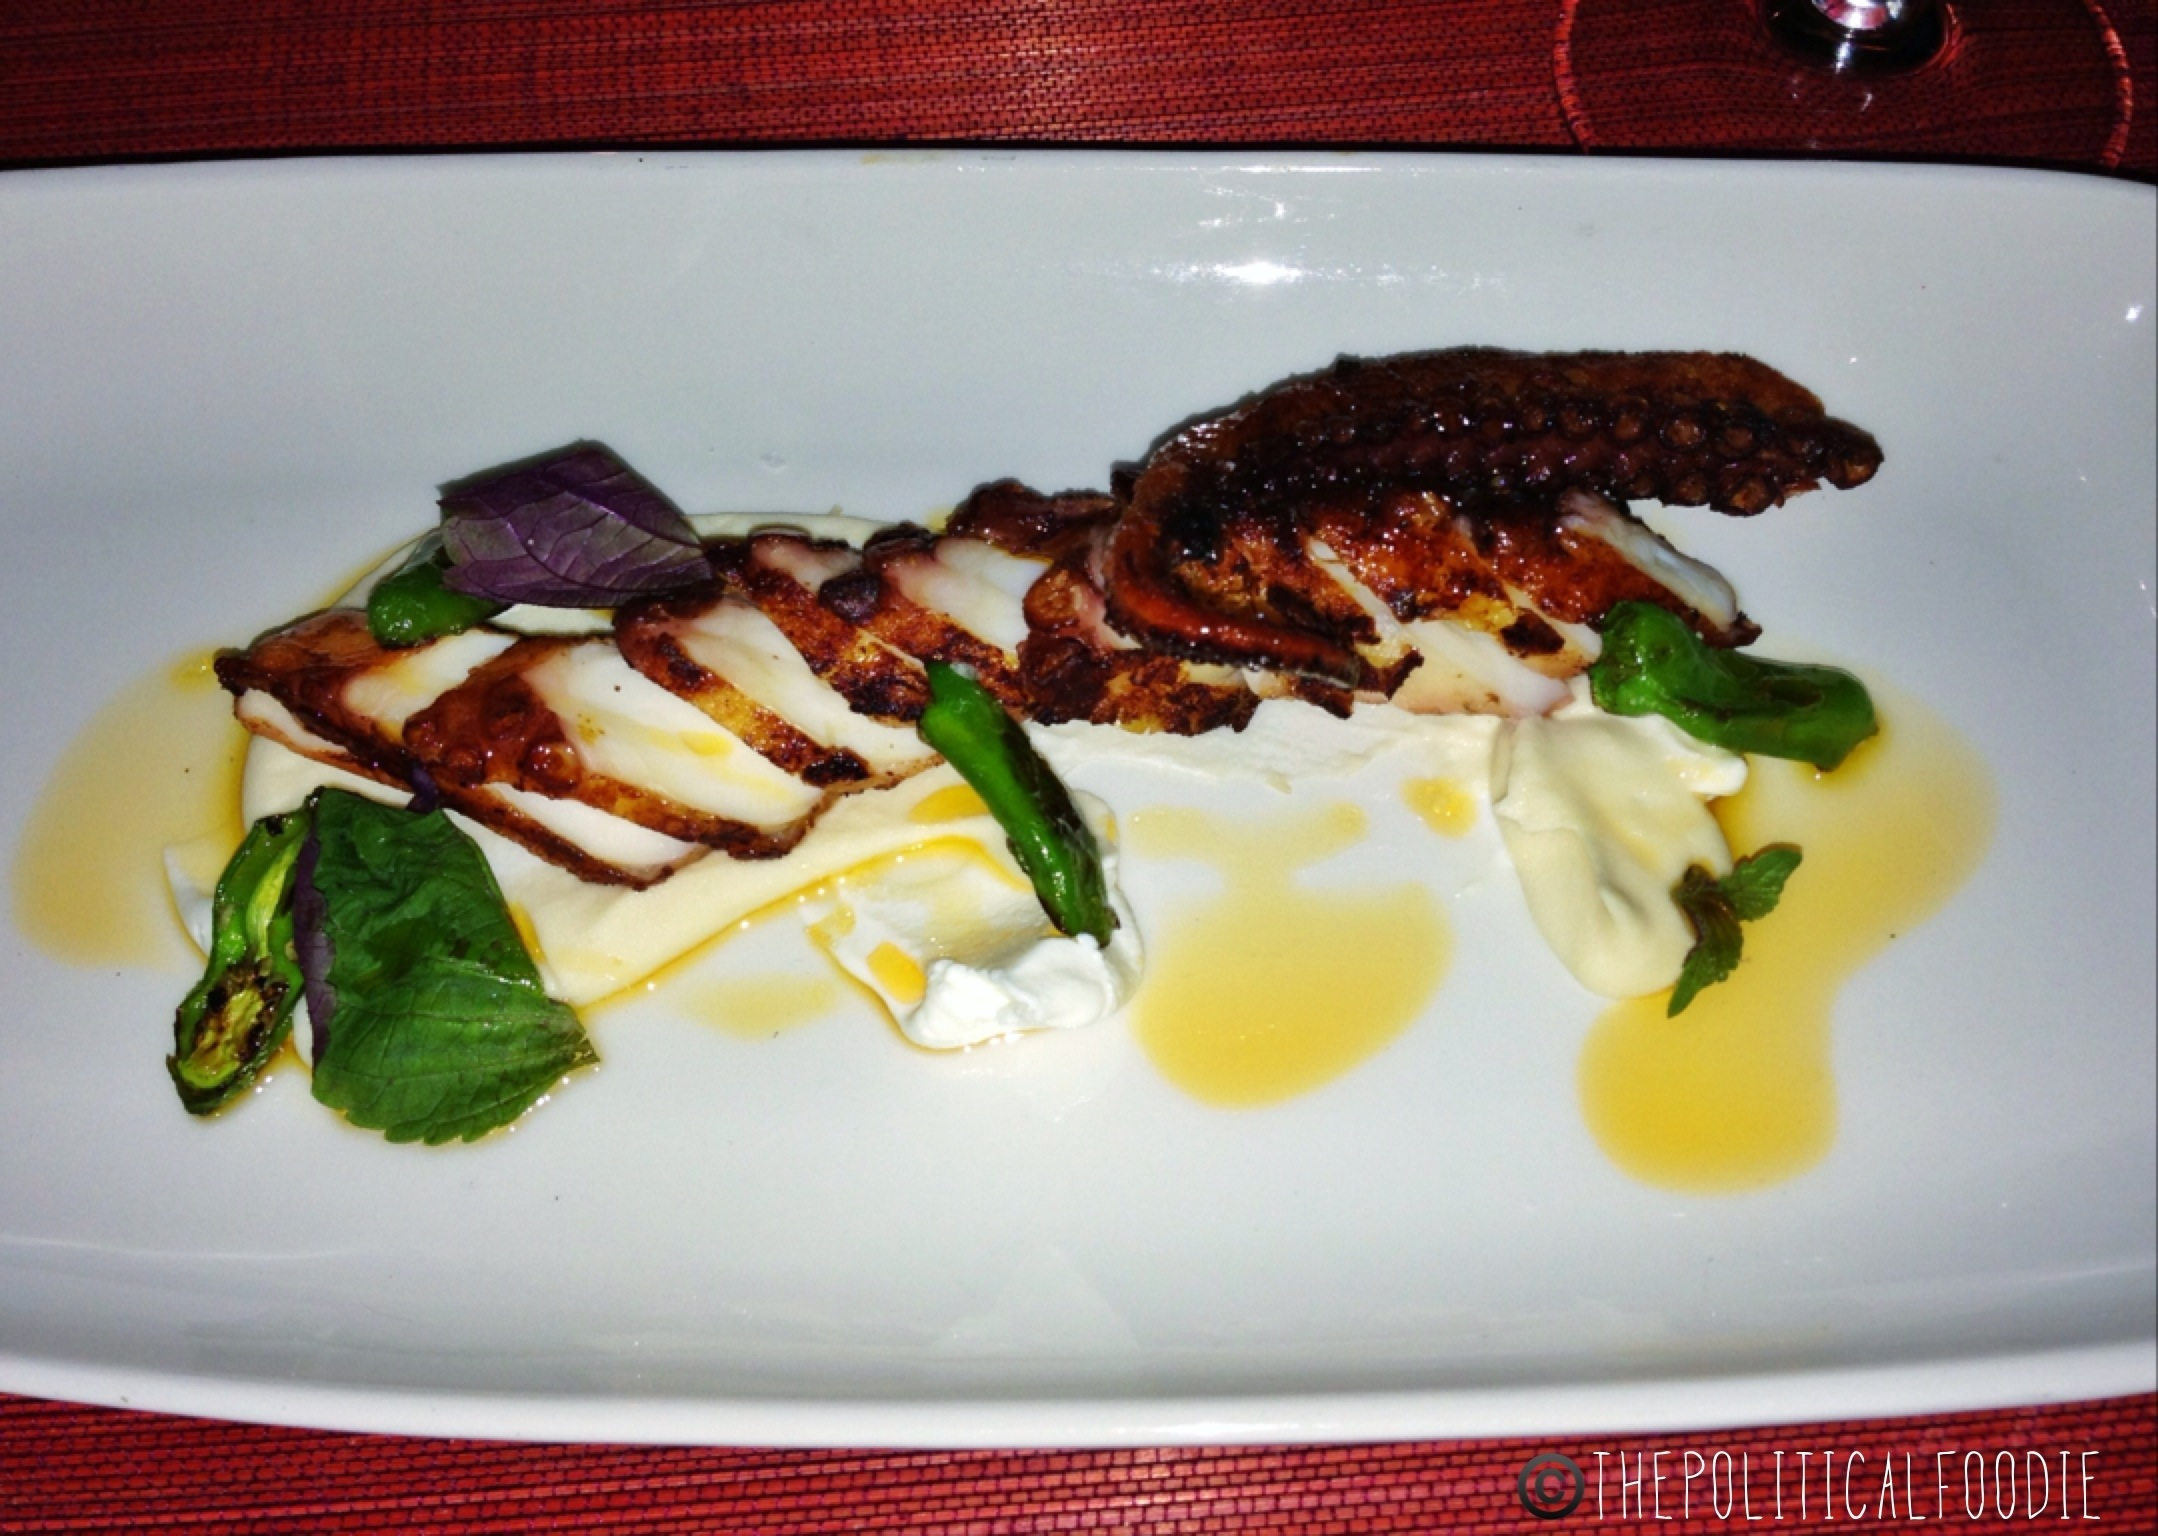 Charred Octopus, White Bean Puree, Yogurt, Basil, Shishito